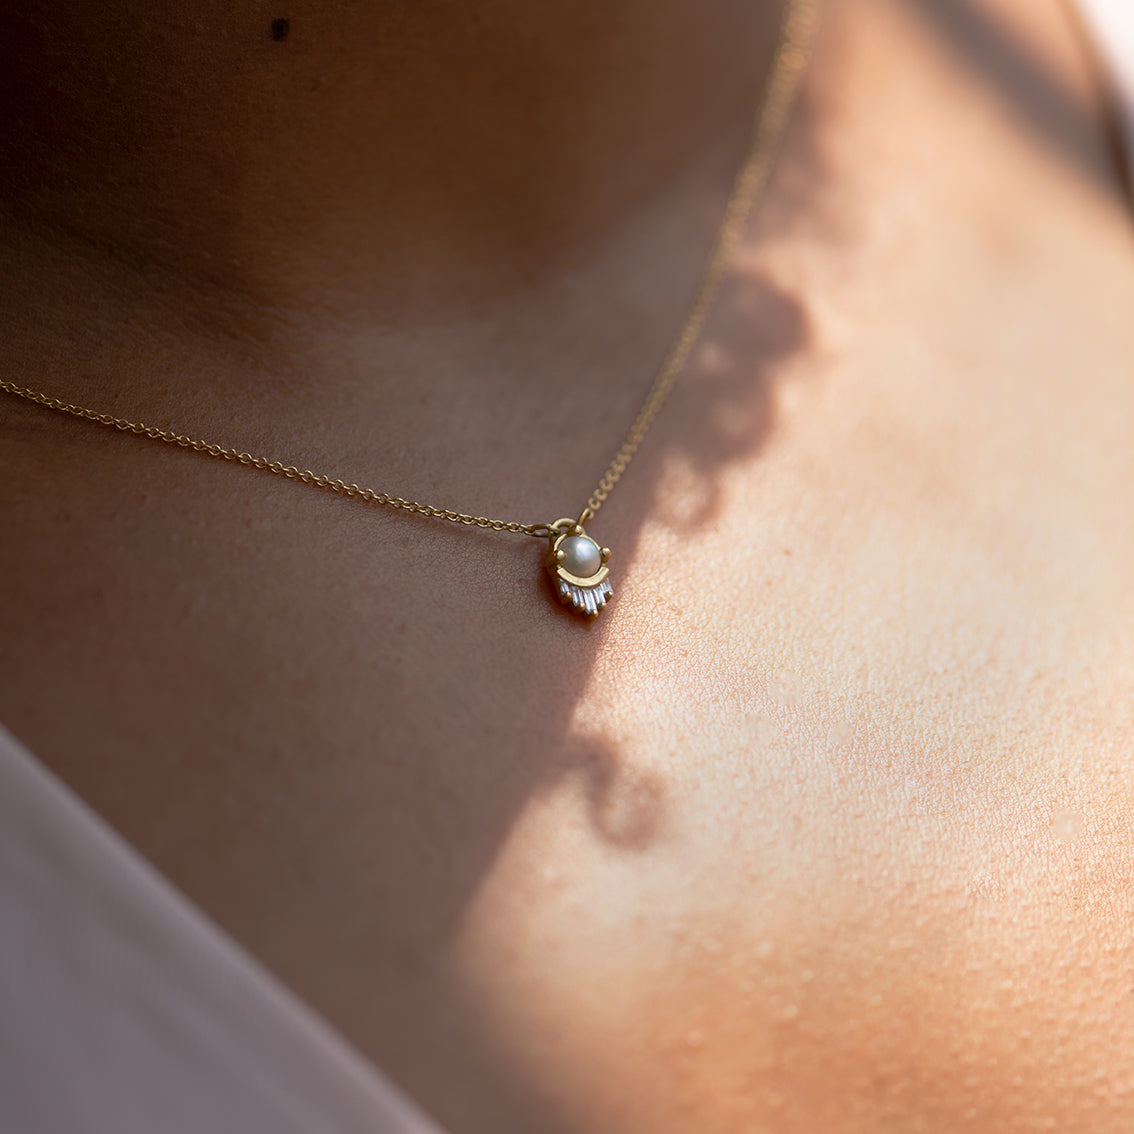 Pearl-and-Diamond-Necklace-in-Solid-Gold-on-skin